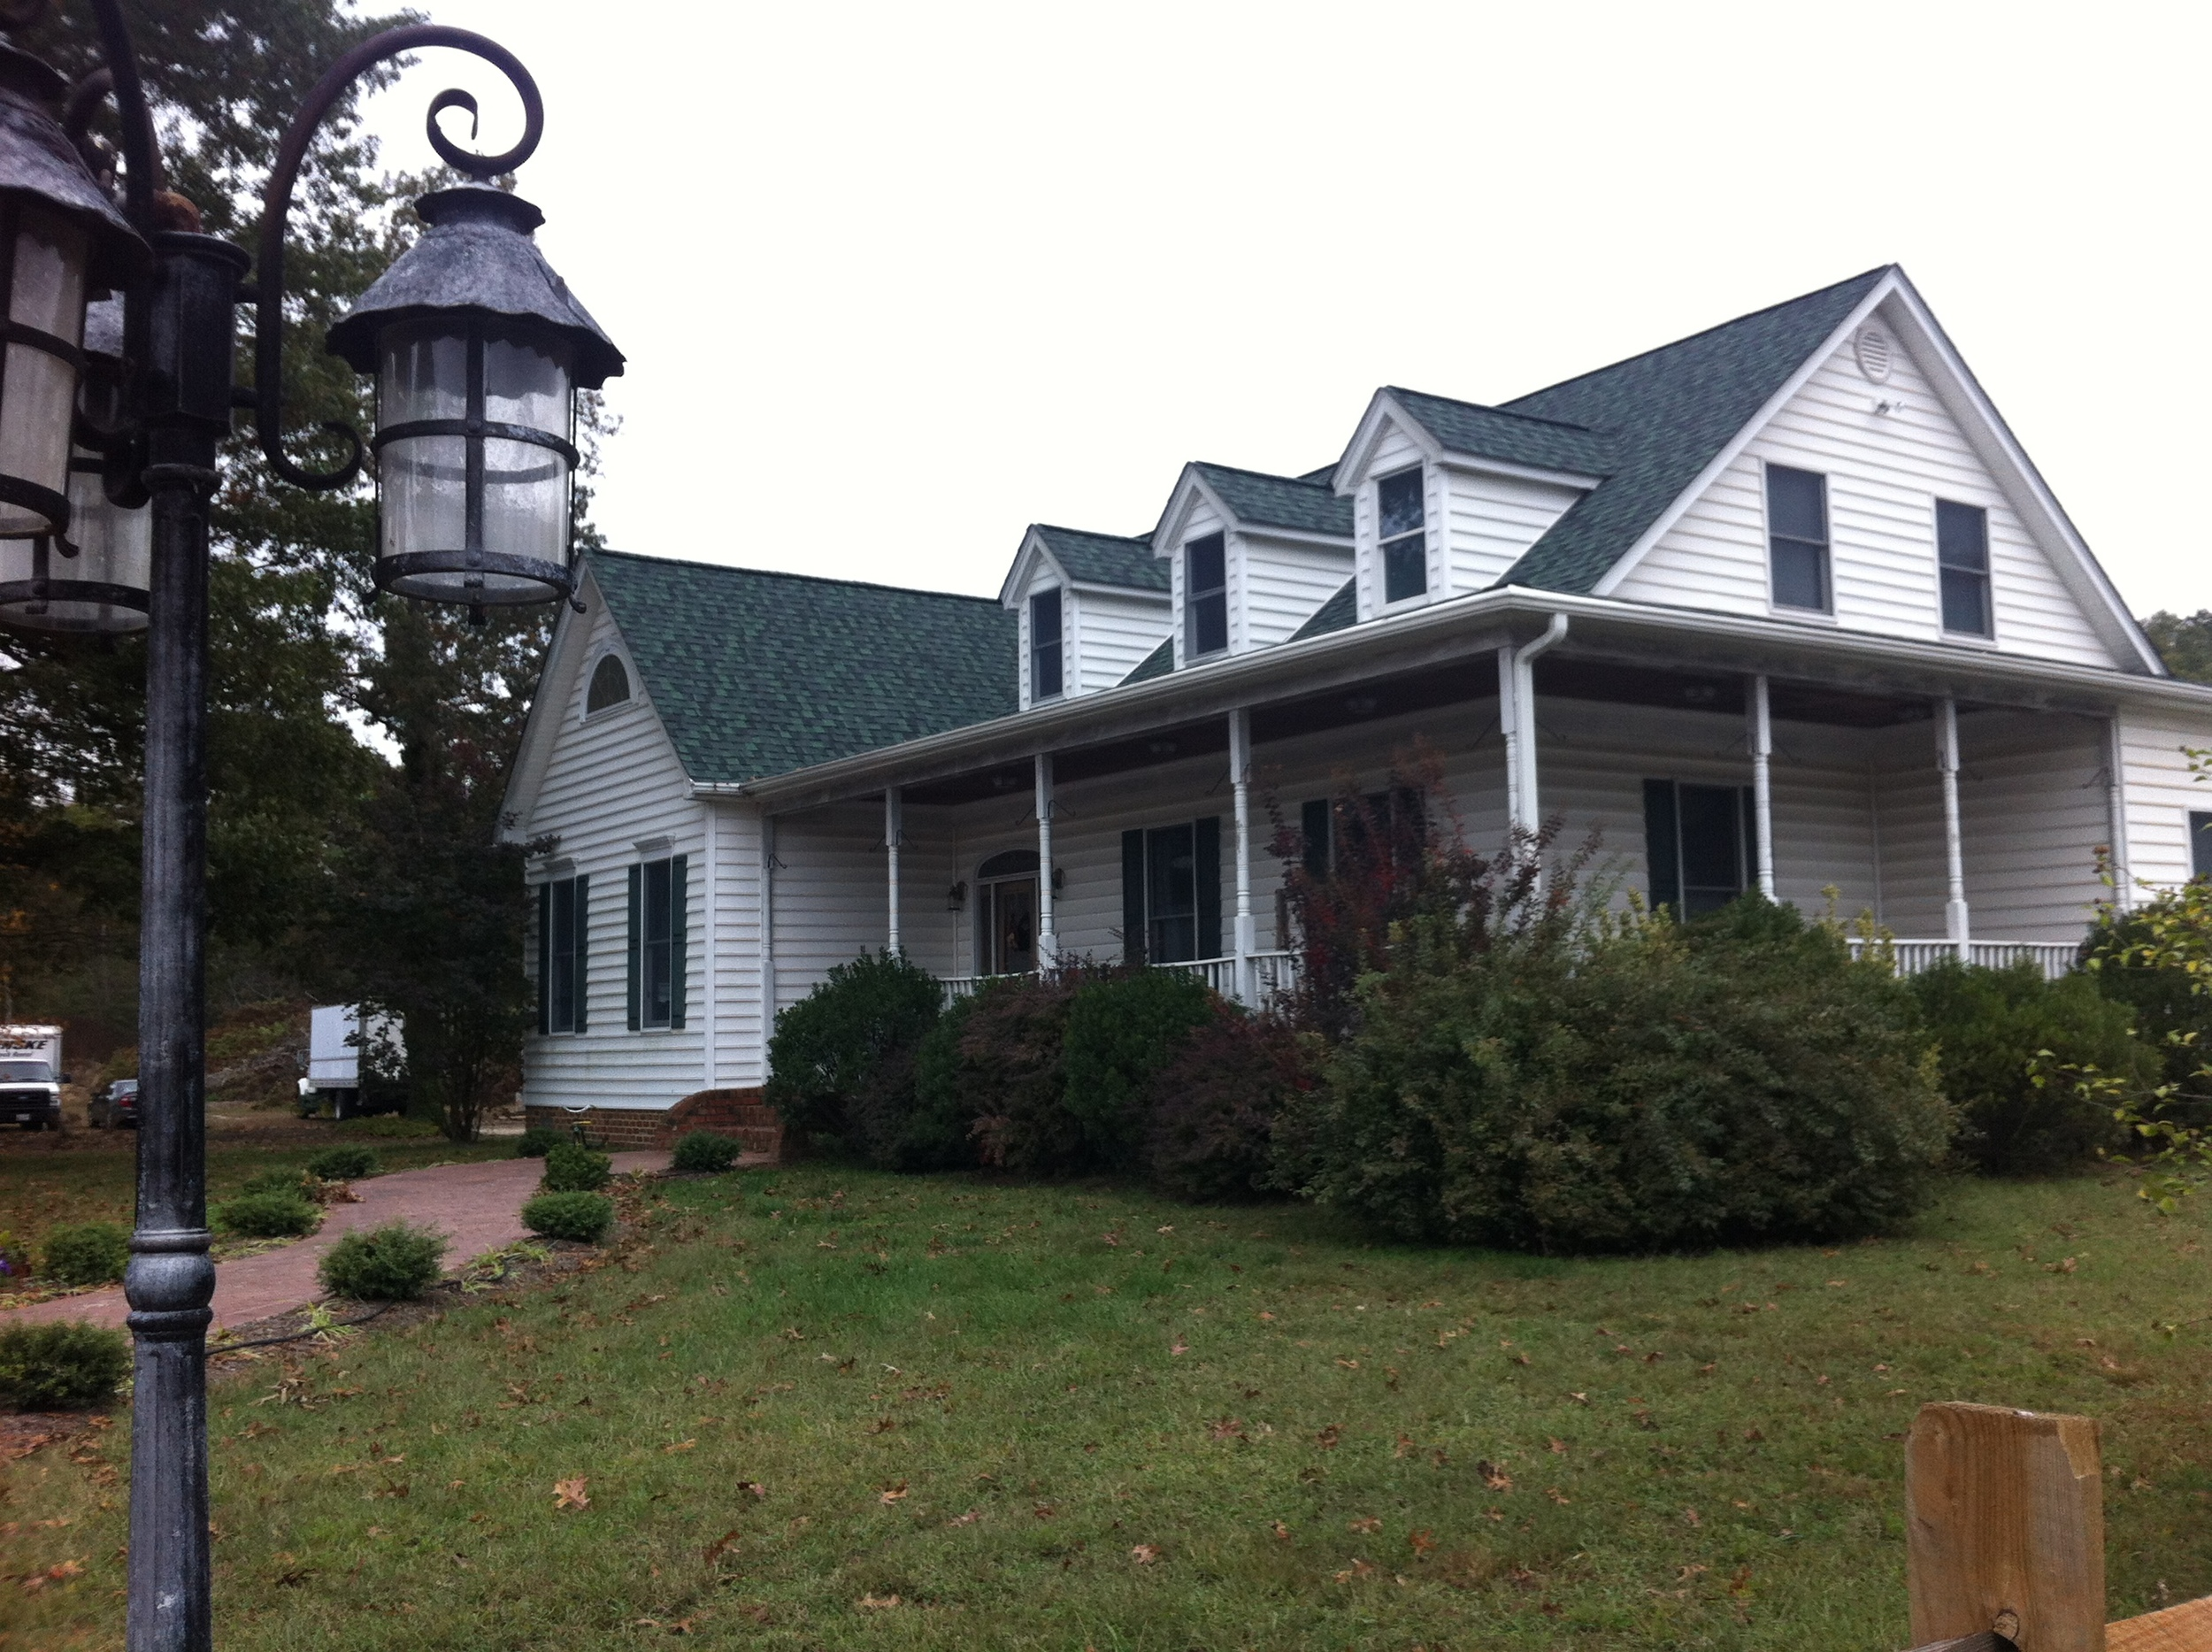 The main house at Shlagel Farms. This family owned and operated farm has been in operation for over a century!